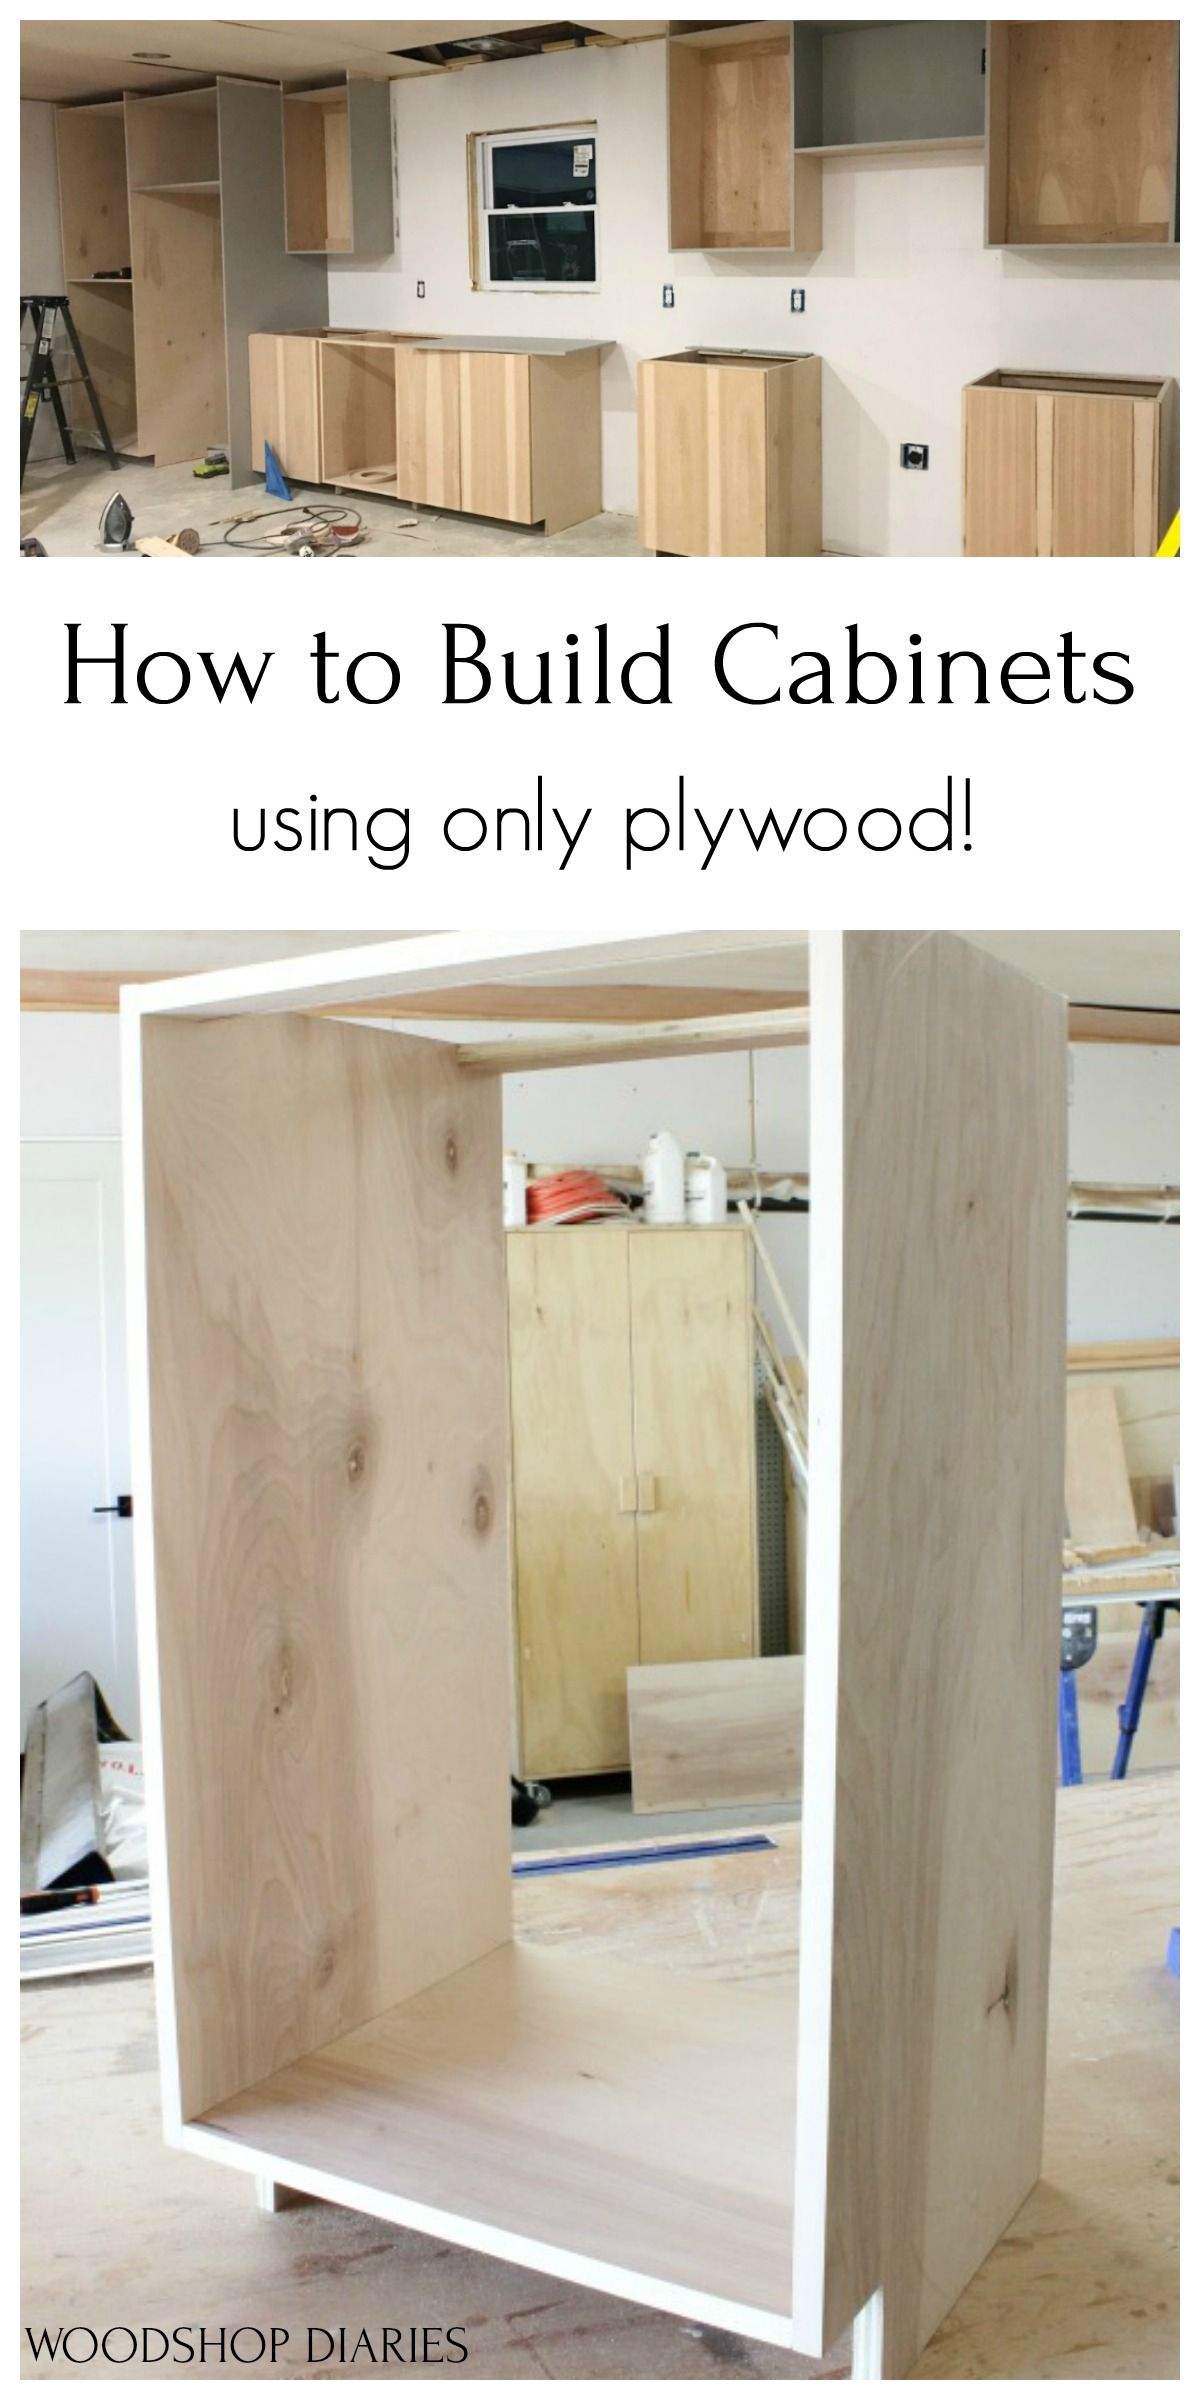 Diy Kitchen Cabinets Made From Only Plywood In 2020 Diy Kitchen Cabinets Build Diy Cabinets Build Woodworking Plans Kitchen